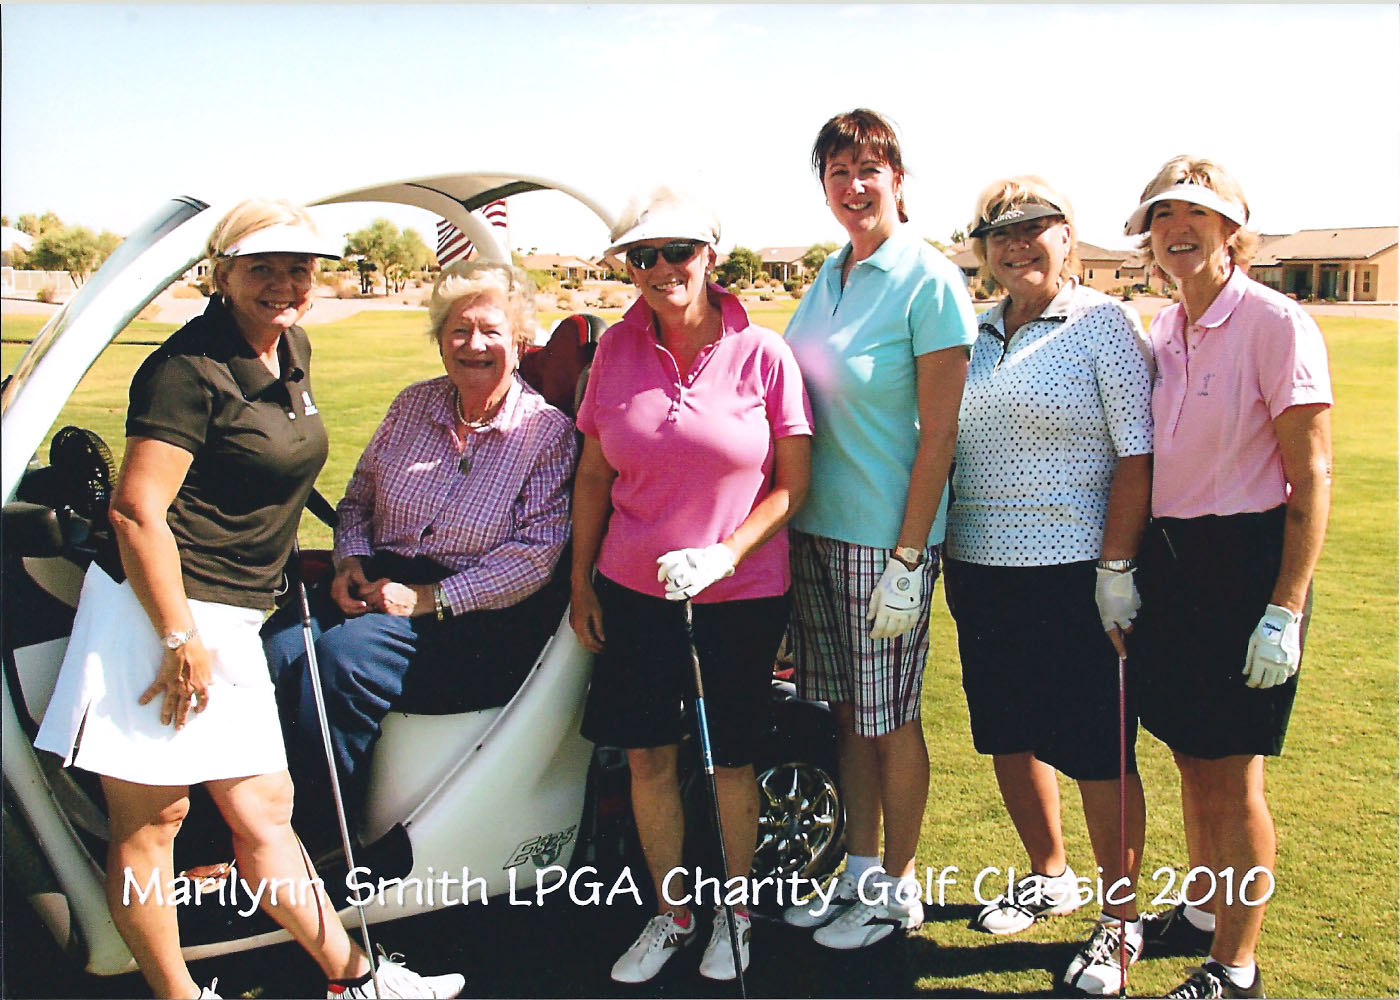 Marilyn Smith Founder LPGA